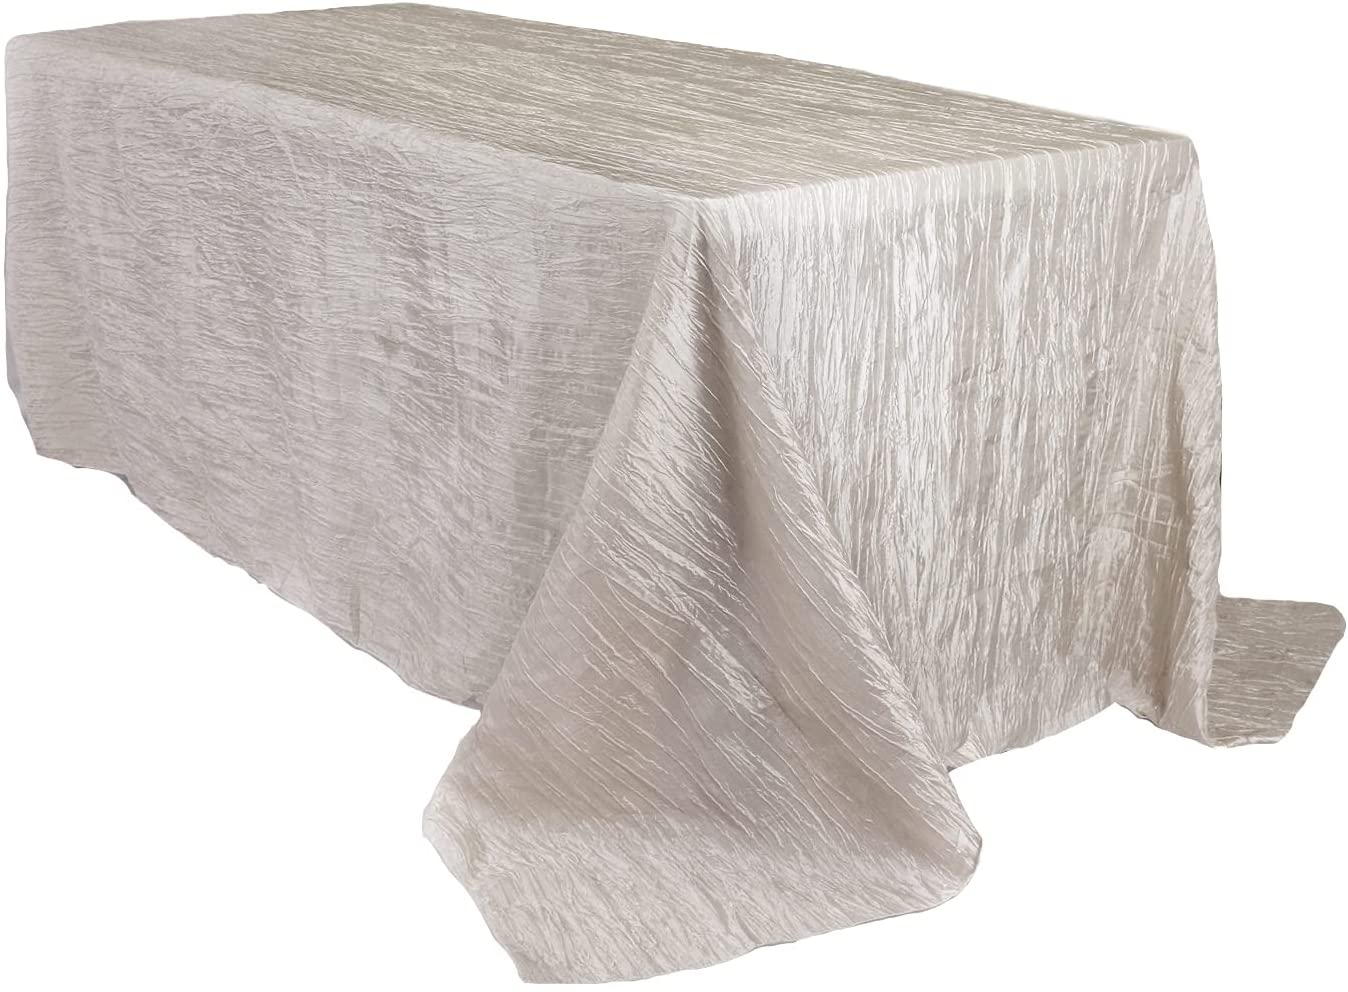 Elegant Your Chair Covers - 90 x Crinkle Discount is also underway Rectangular Taffeta Ta 132 inch